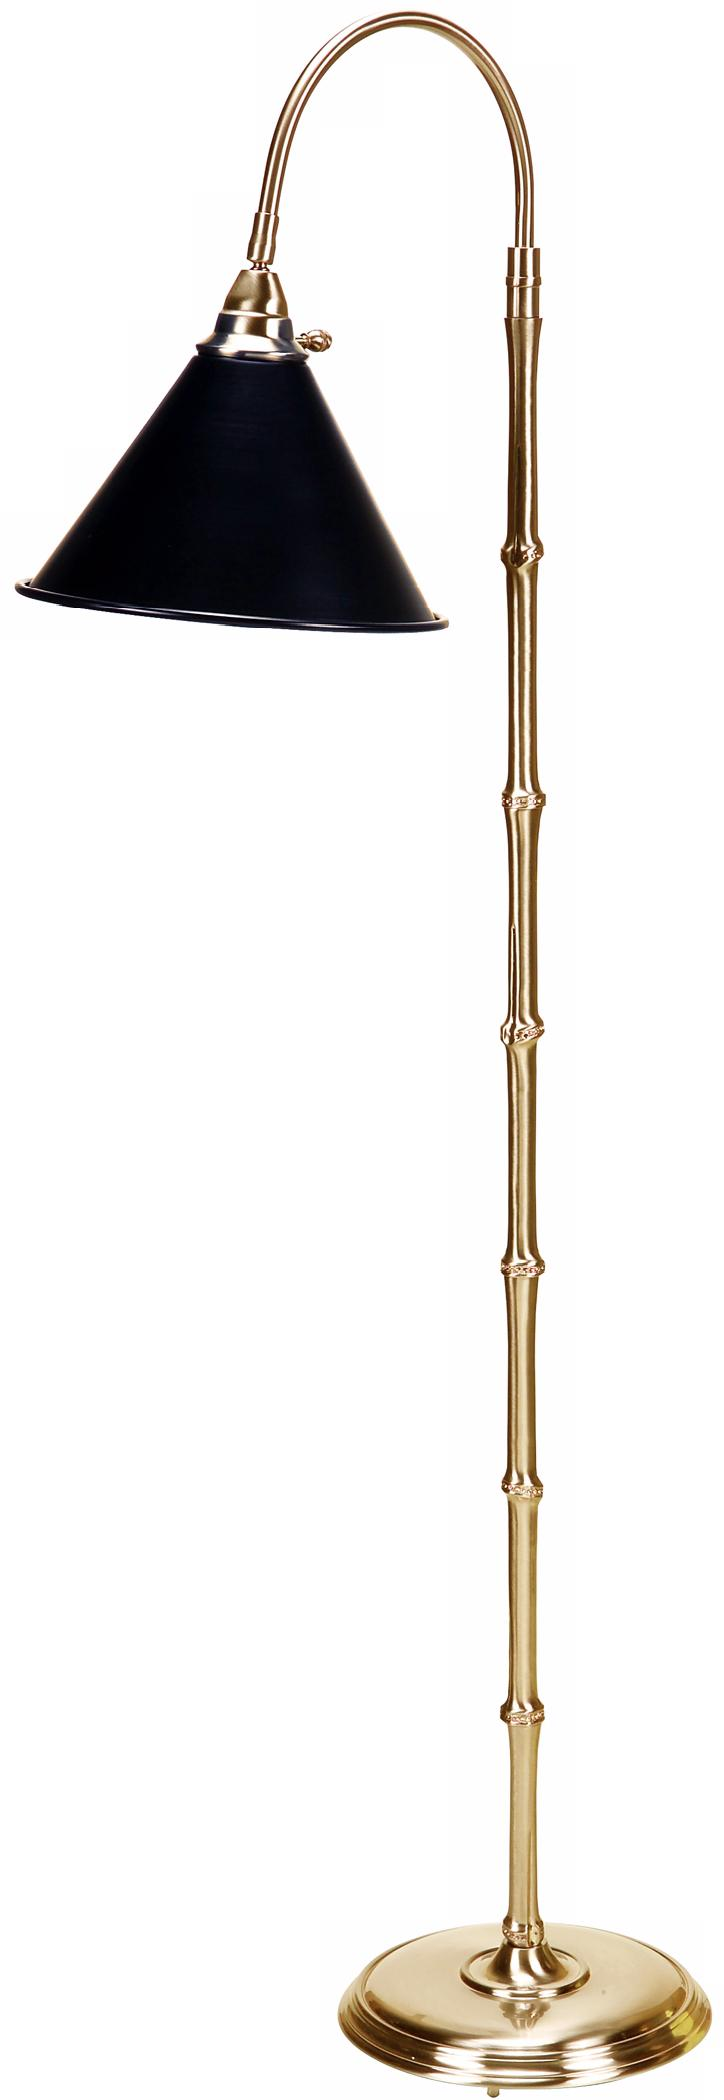 Frederick Cooper Brass Cane Downbridge Floor Lamp (91861)